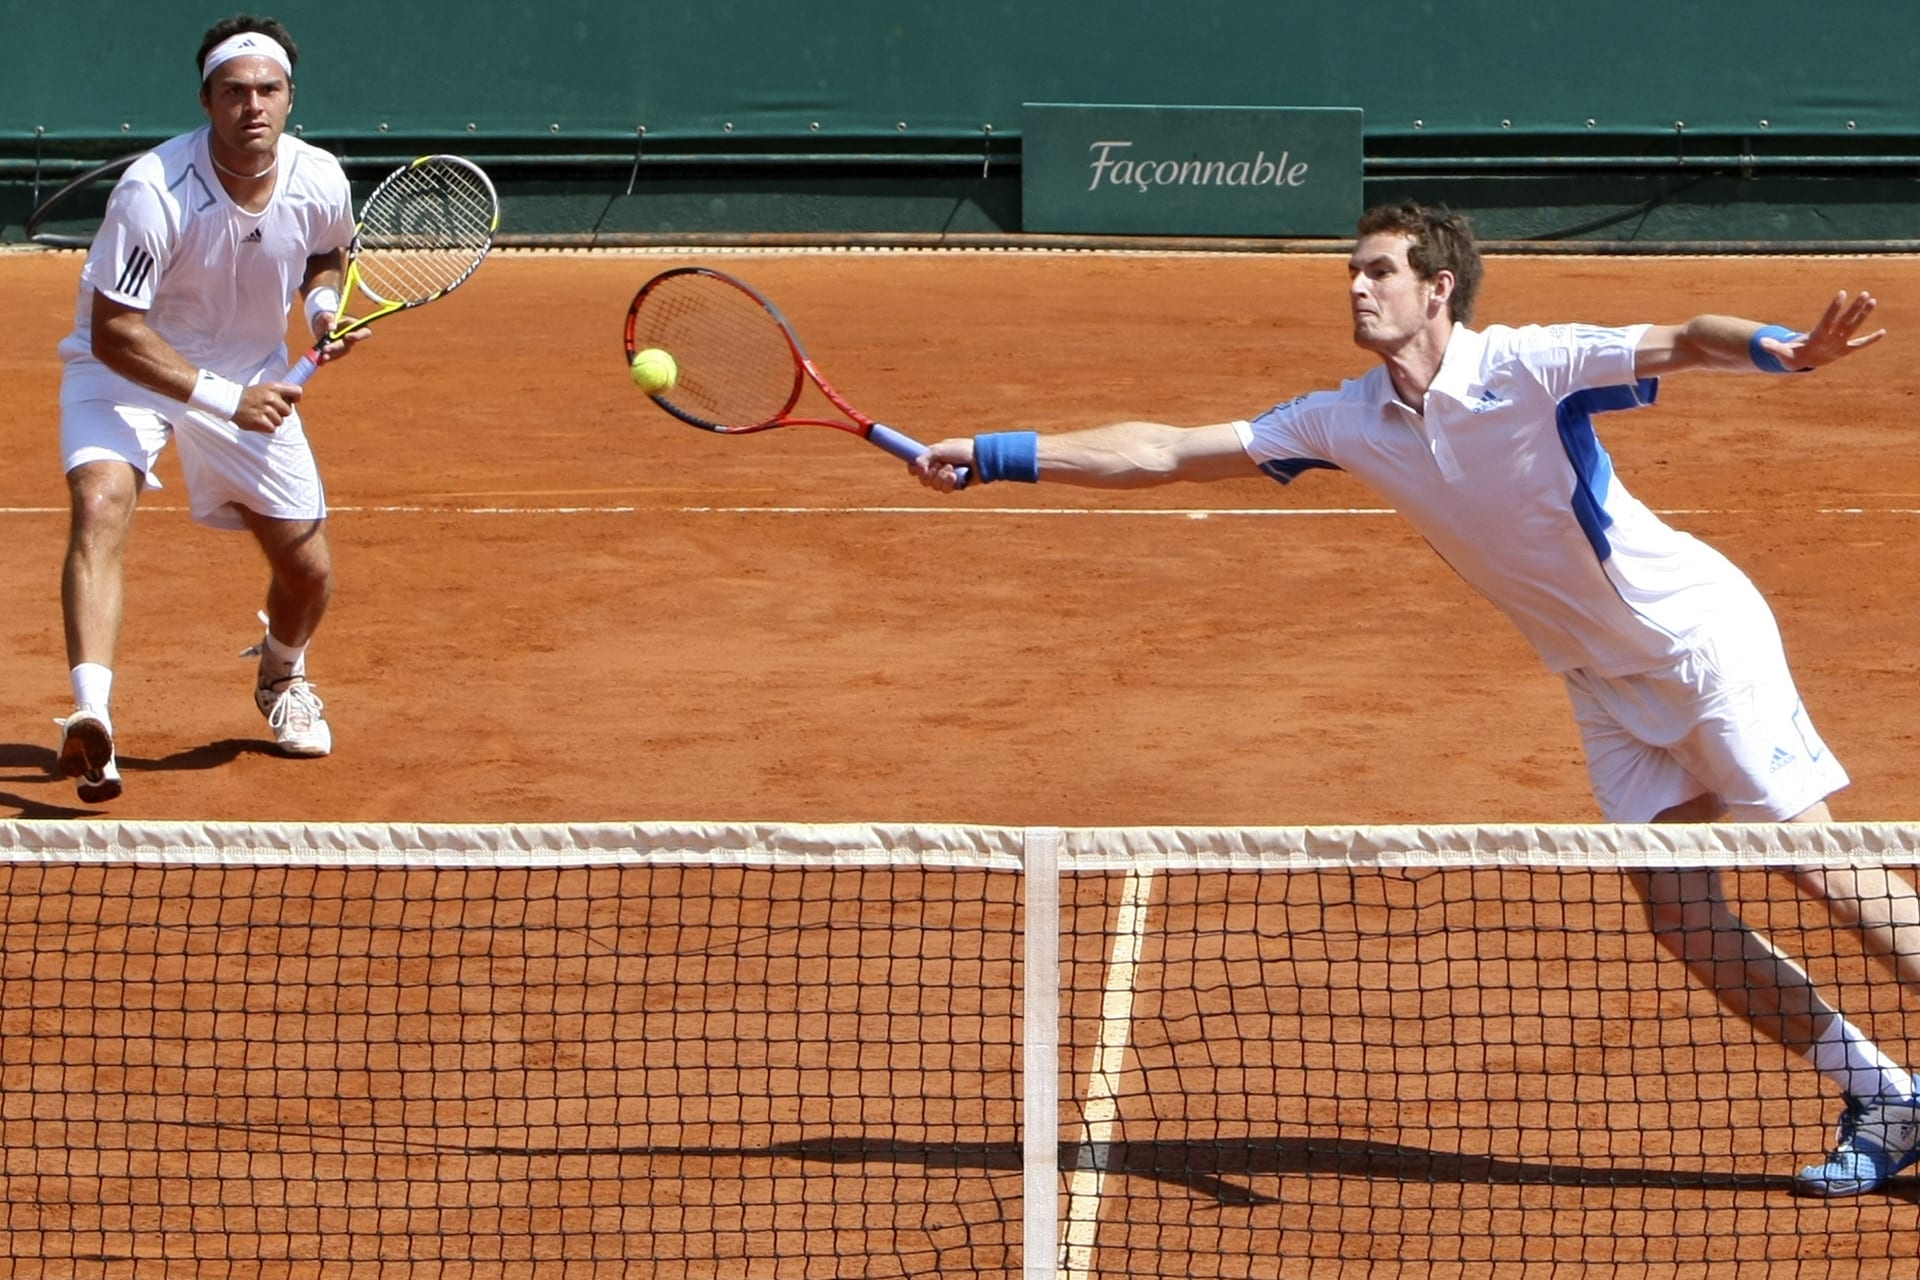 Britain's Ross Hutchins, left, looks on as doubles partner Andy Murray, right, returns the ball to USA's Mike Bryan and Bob Bryan, not seen, during their third round doubles match of the Monte Carlo Tennis Masters tournament, in Monaco, Thursday, April 15, 2010. (AP Photo/Claude Paris)